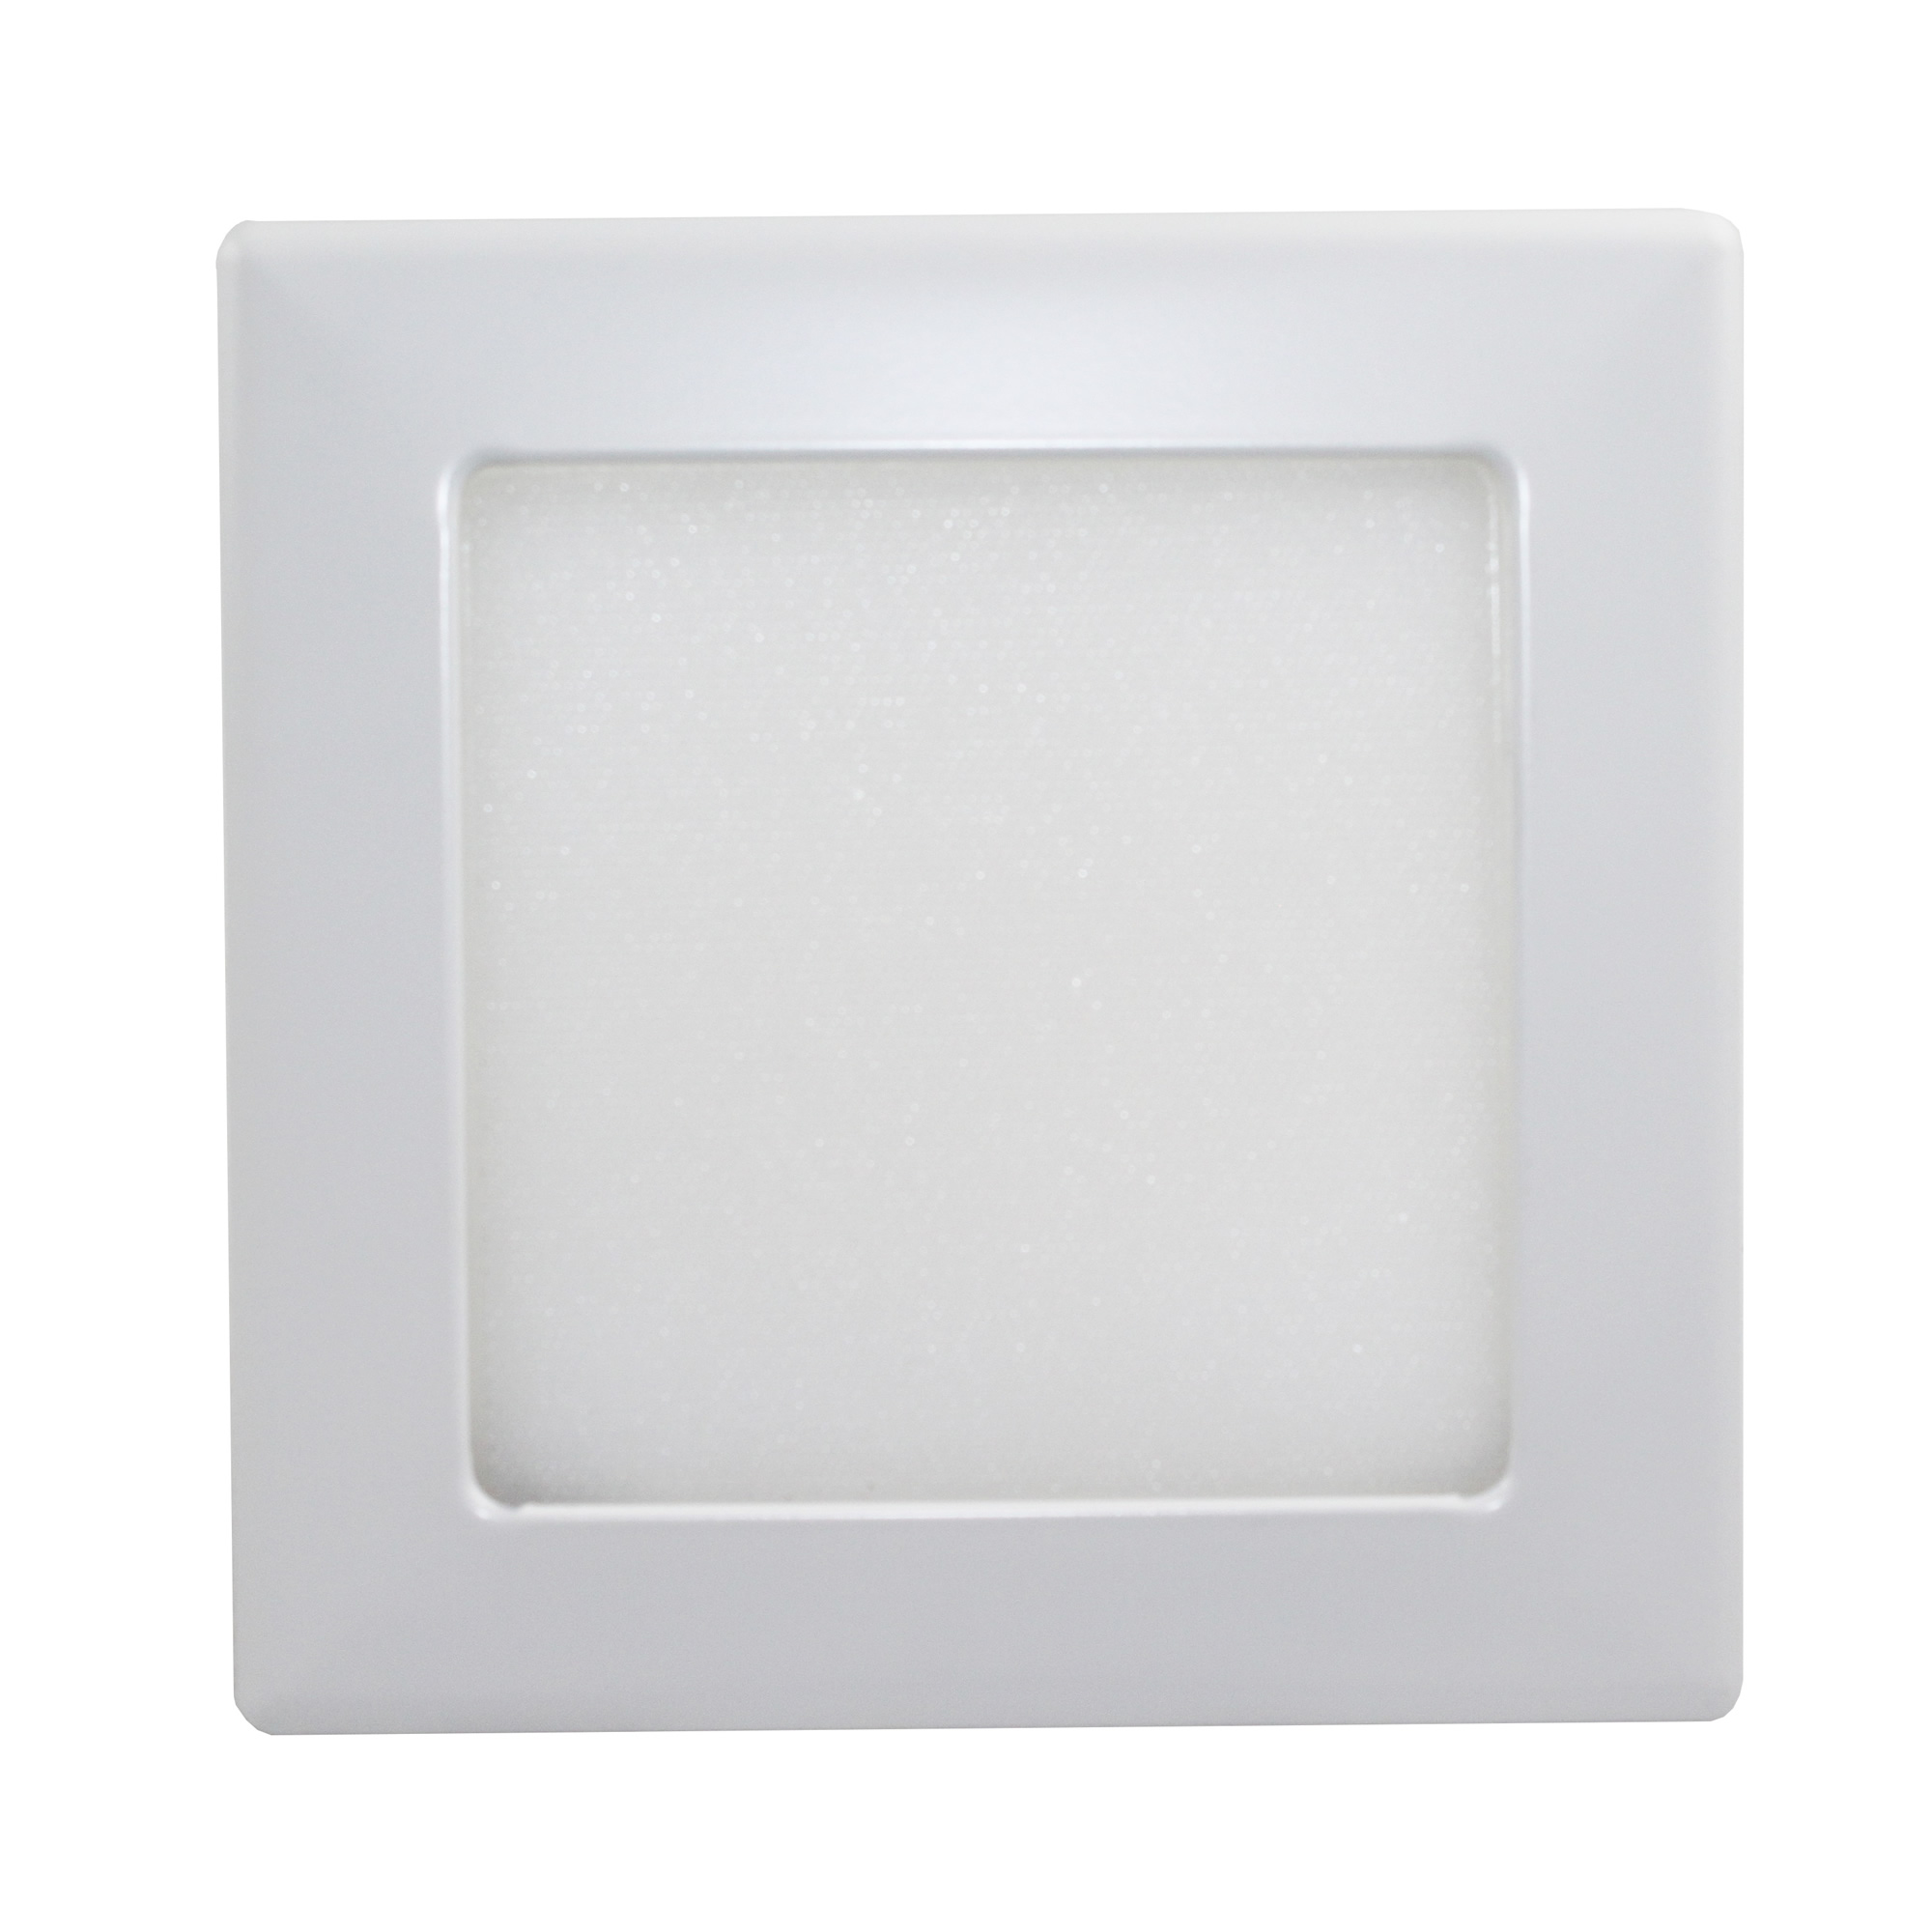 Capri Lighting S12p 8 Recessed Incandescent And Shallow